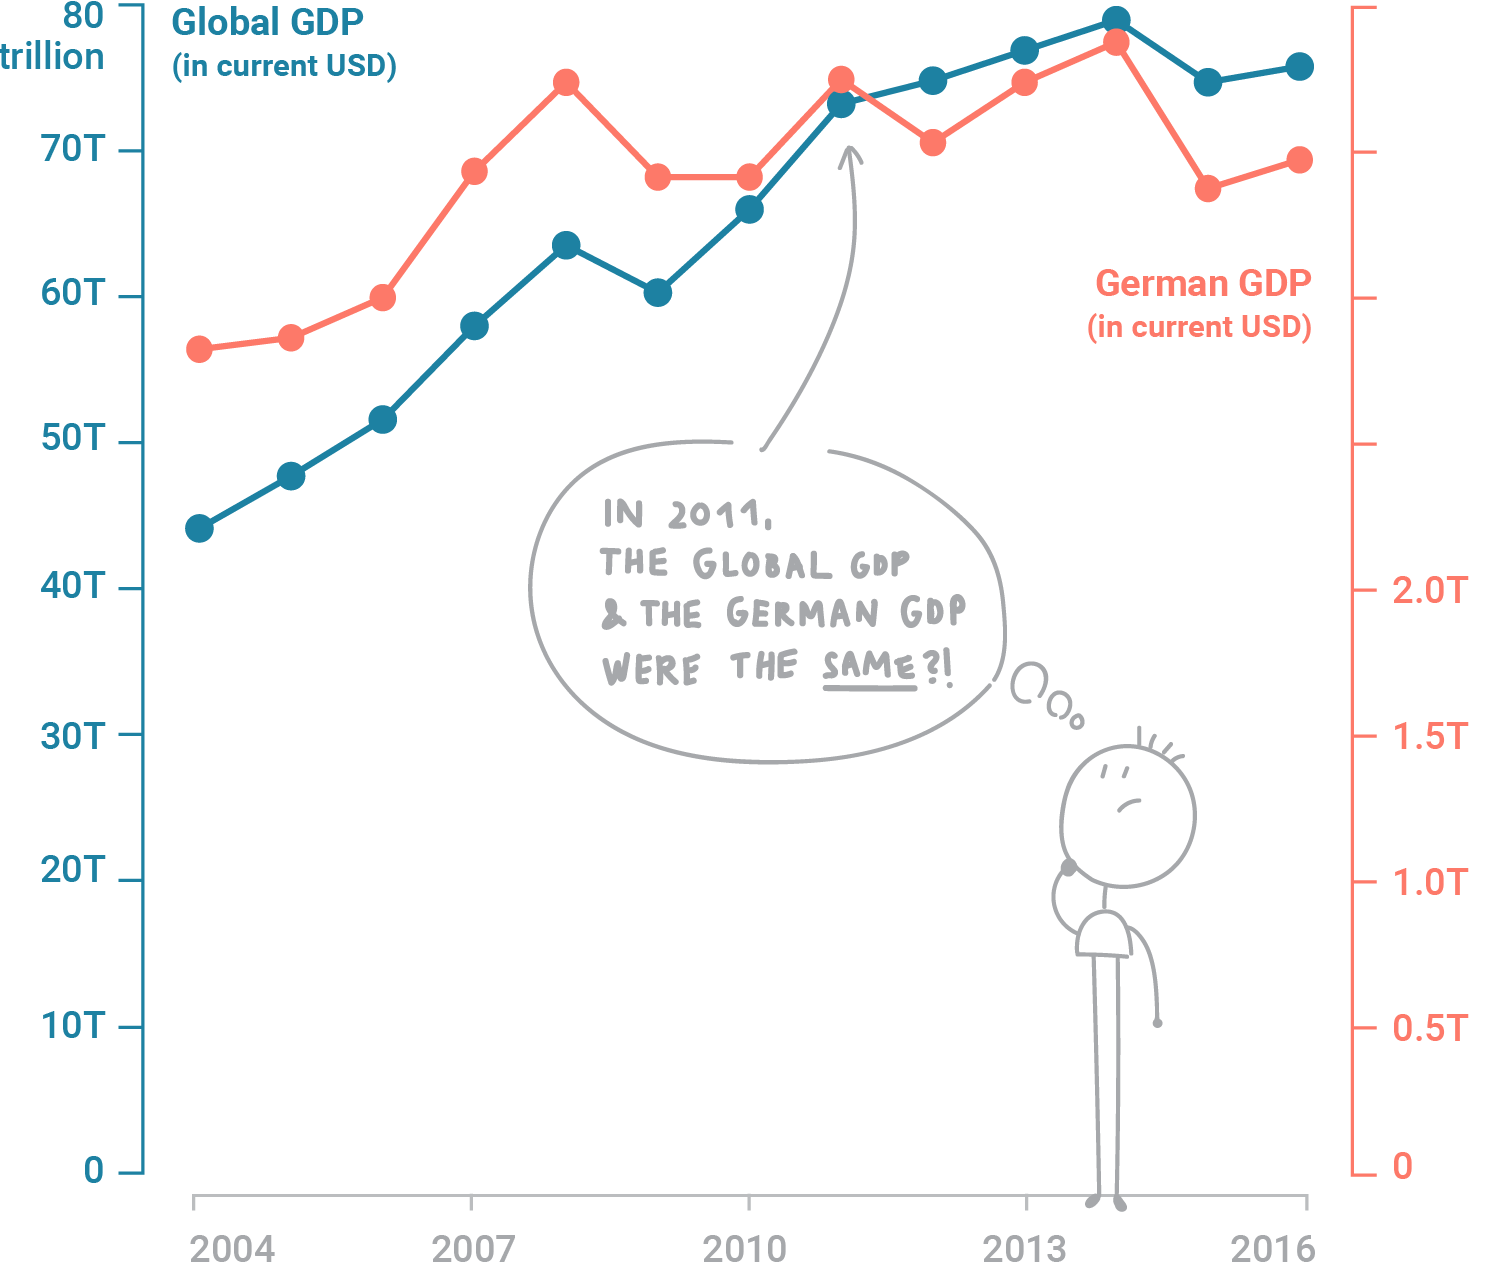 a dual-axis line chart overlaid with a stick figure drawing of a confused person misreading the chart's data